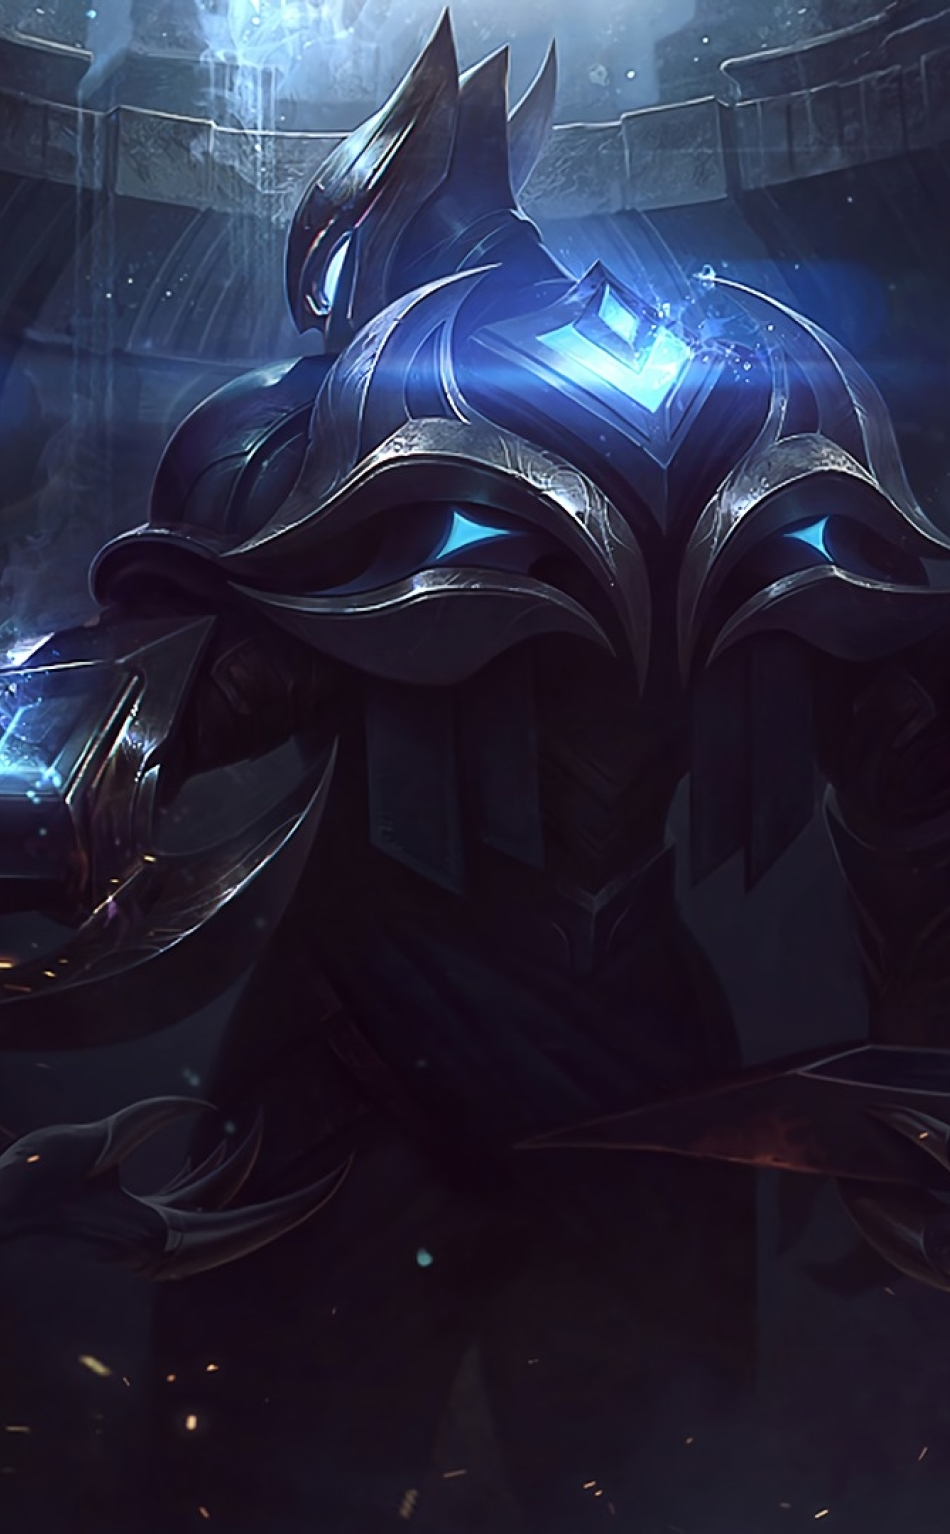 League Of Legends Zed And Overwatch Reaper, Full HD Wallpaper